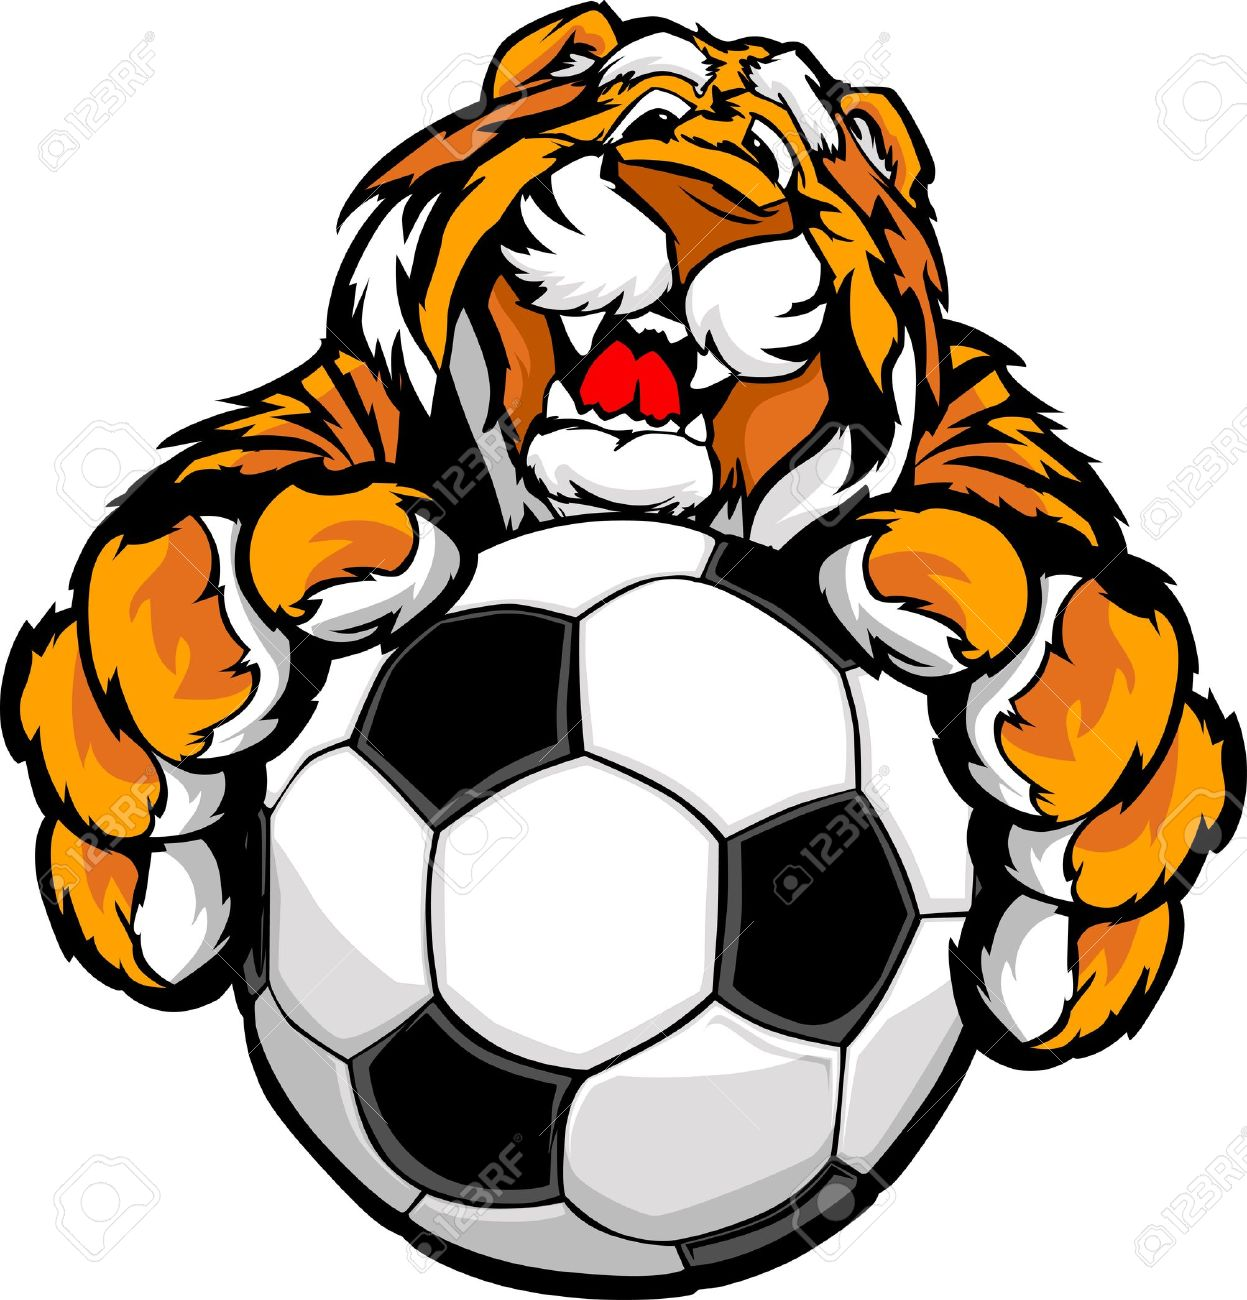 Graphic Mascot Vector Image of a Friendly Tiger with Paws on a Soccer Ball Stock Vector - 13326033